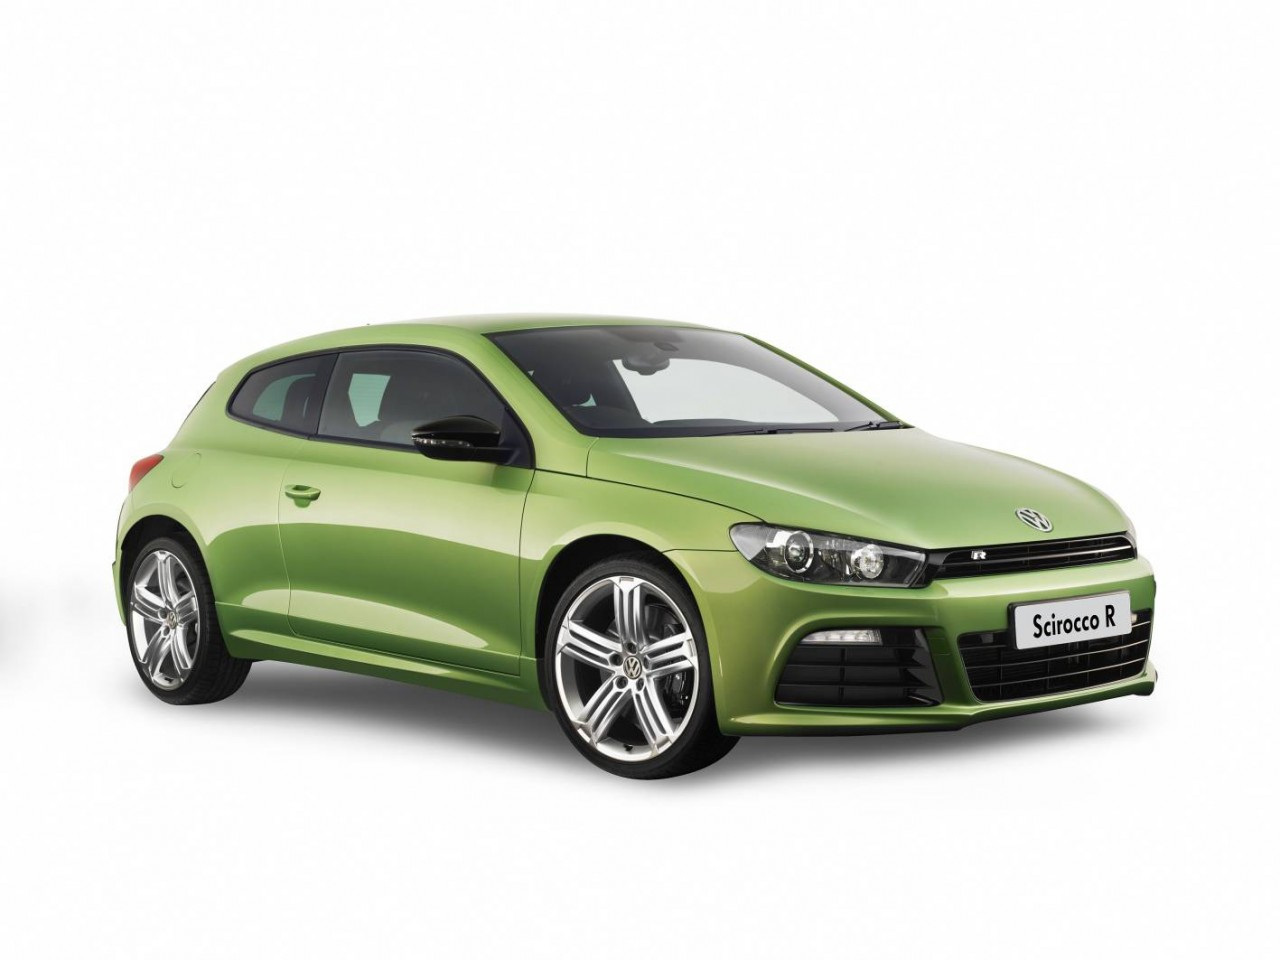 volkswagen scirocco r australian prices announced performancedrive. Black Bedroom Furniture Sets. Home Design Ideas